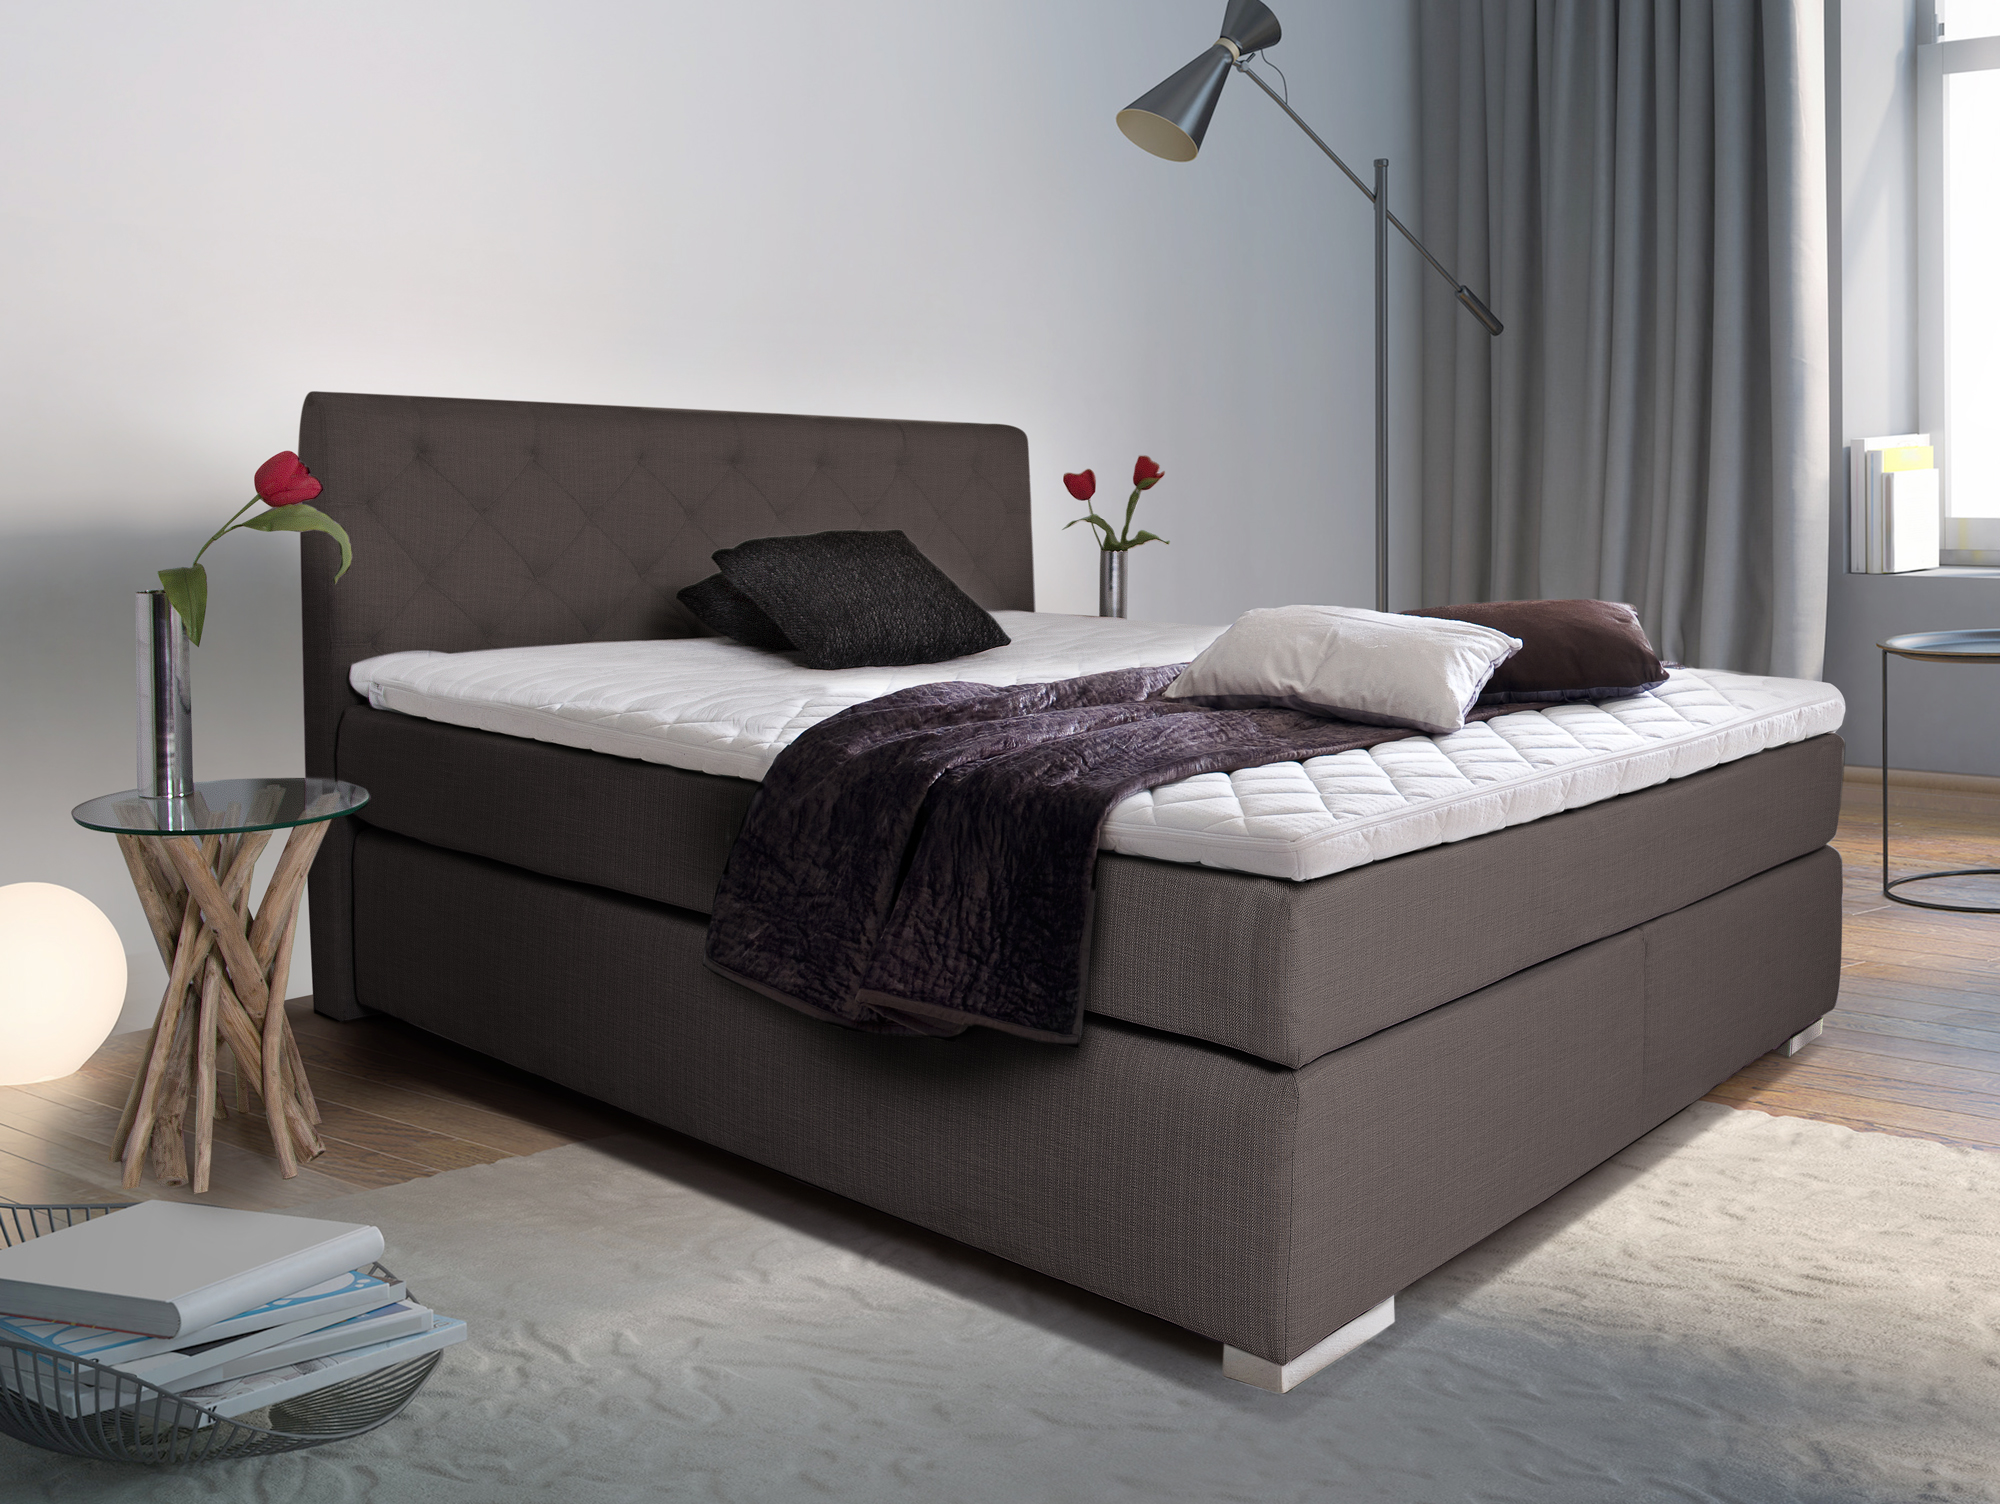 premium boxspringbett inkl kopfteil 200 x 200 cm braun h rtegrad 2. Black Bedroom Furniture Sets. Home Design Ideas